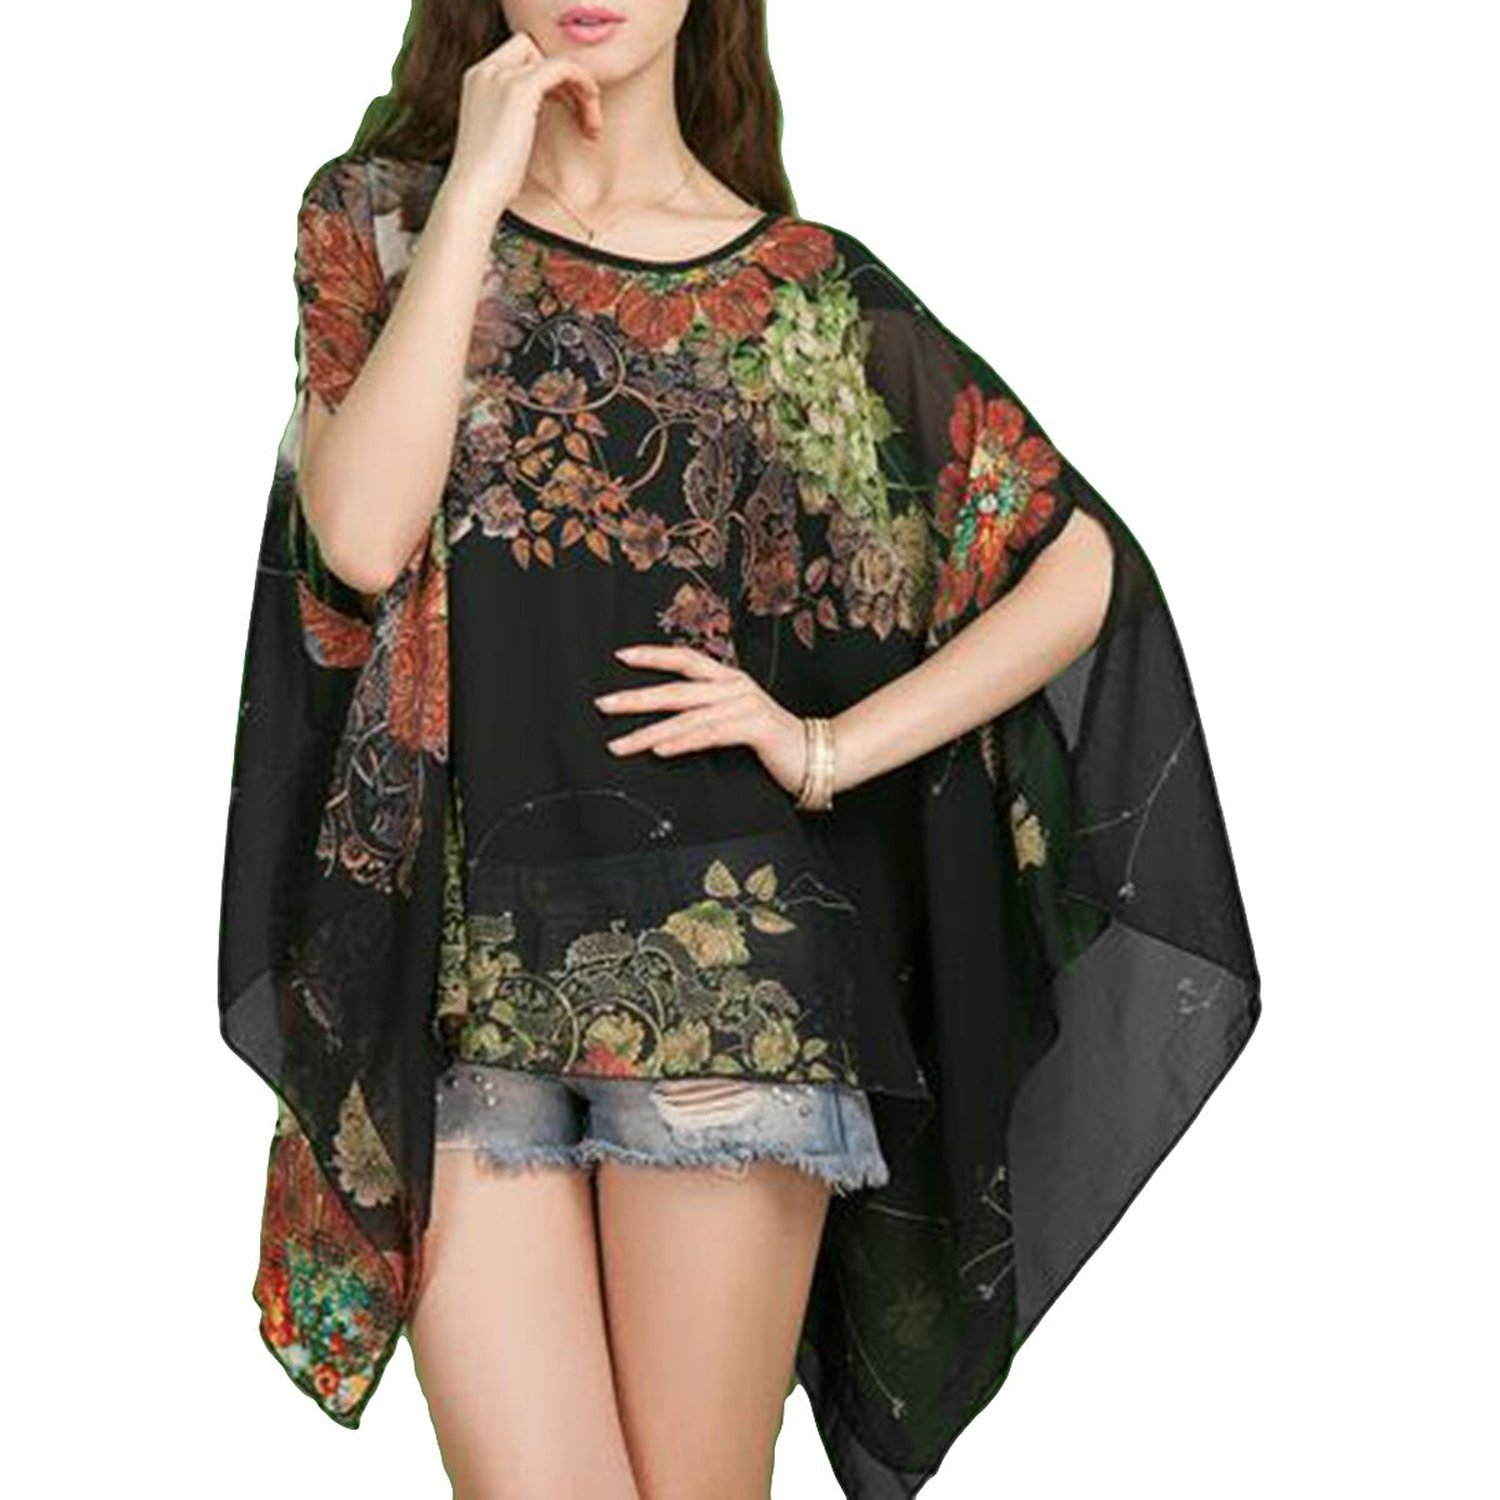 iNewbetter Women's Chiffon Caftan Poncho Tunic Top Cover up One Size Scarf Top (Black)